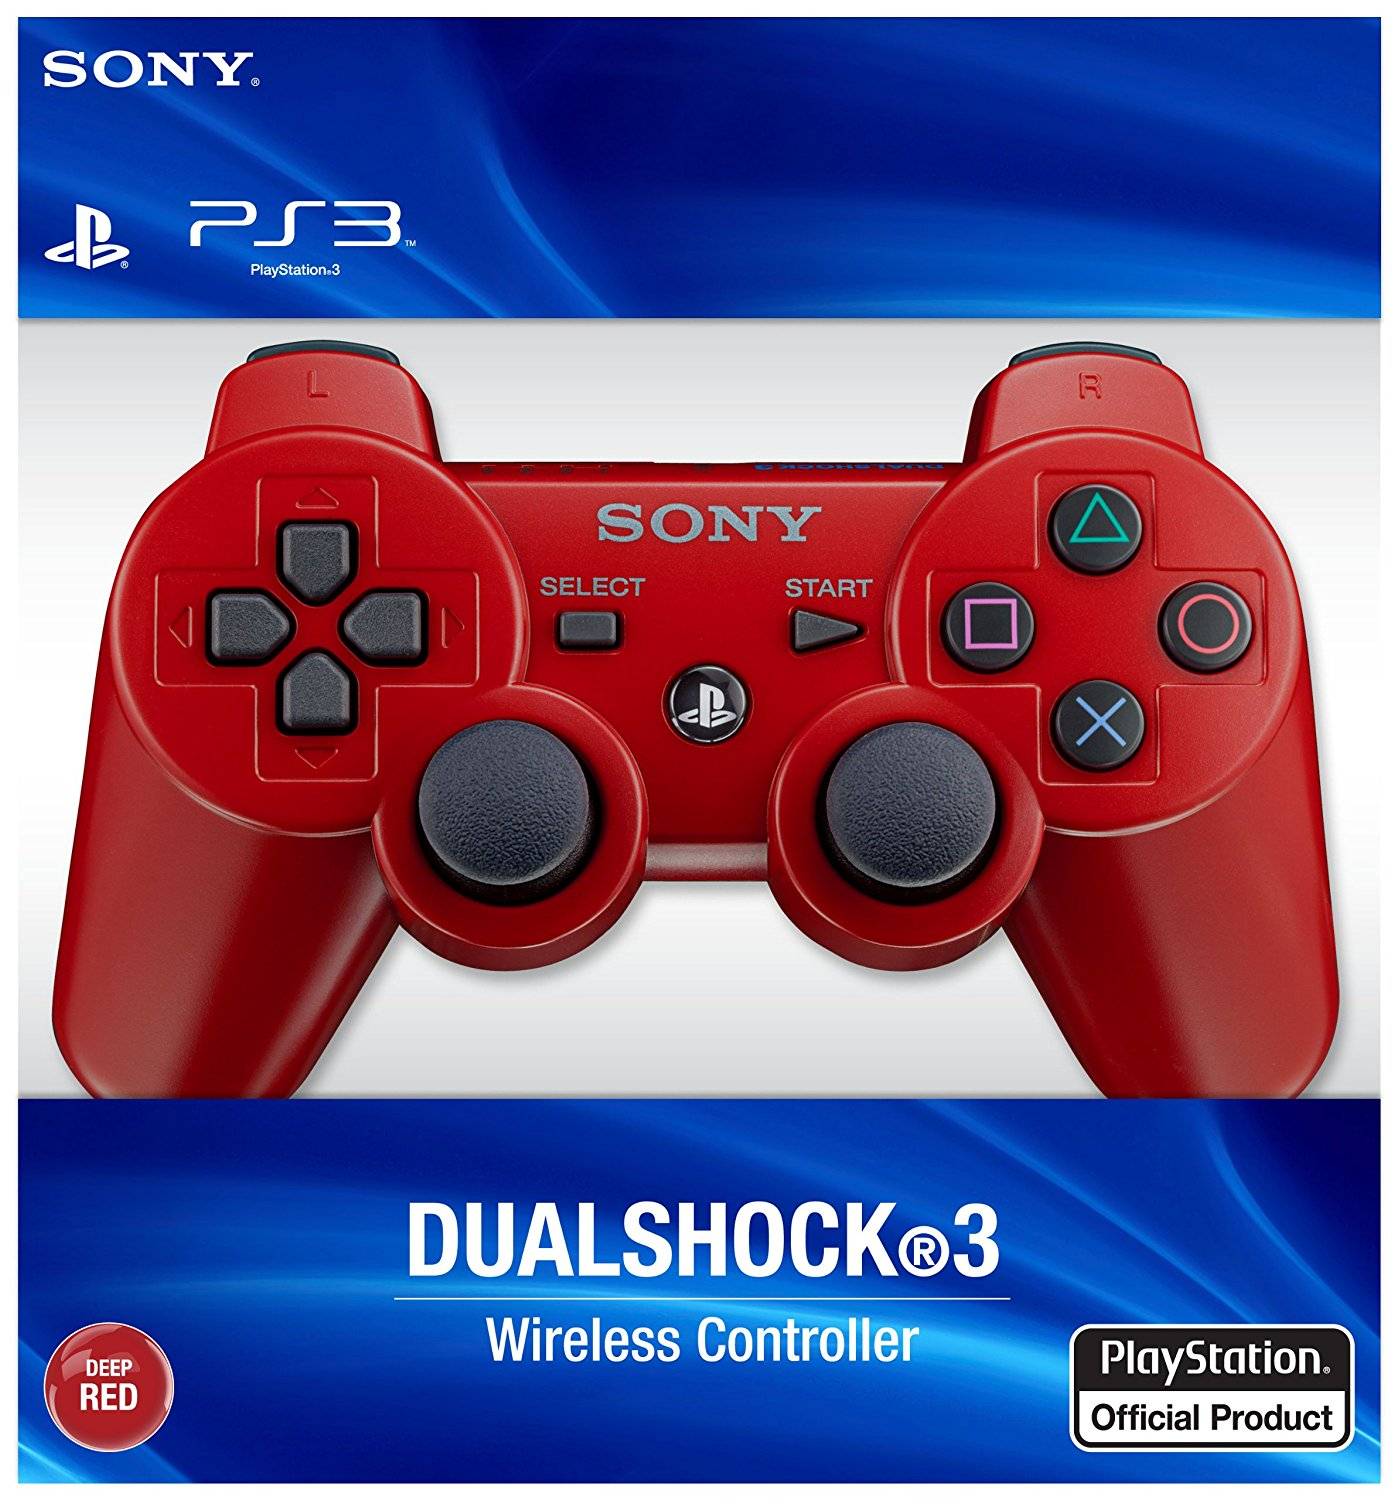 SONY-PlayStation3 Dual Shock-Red